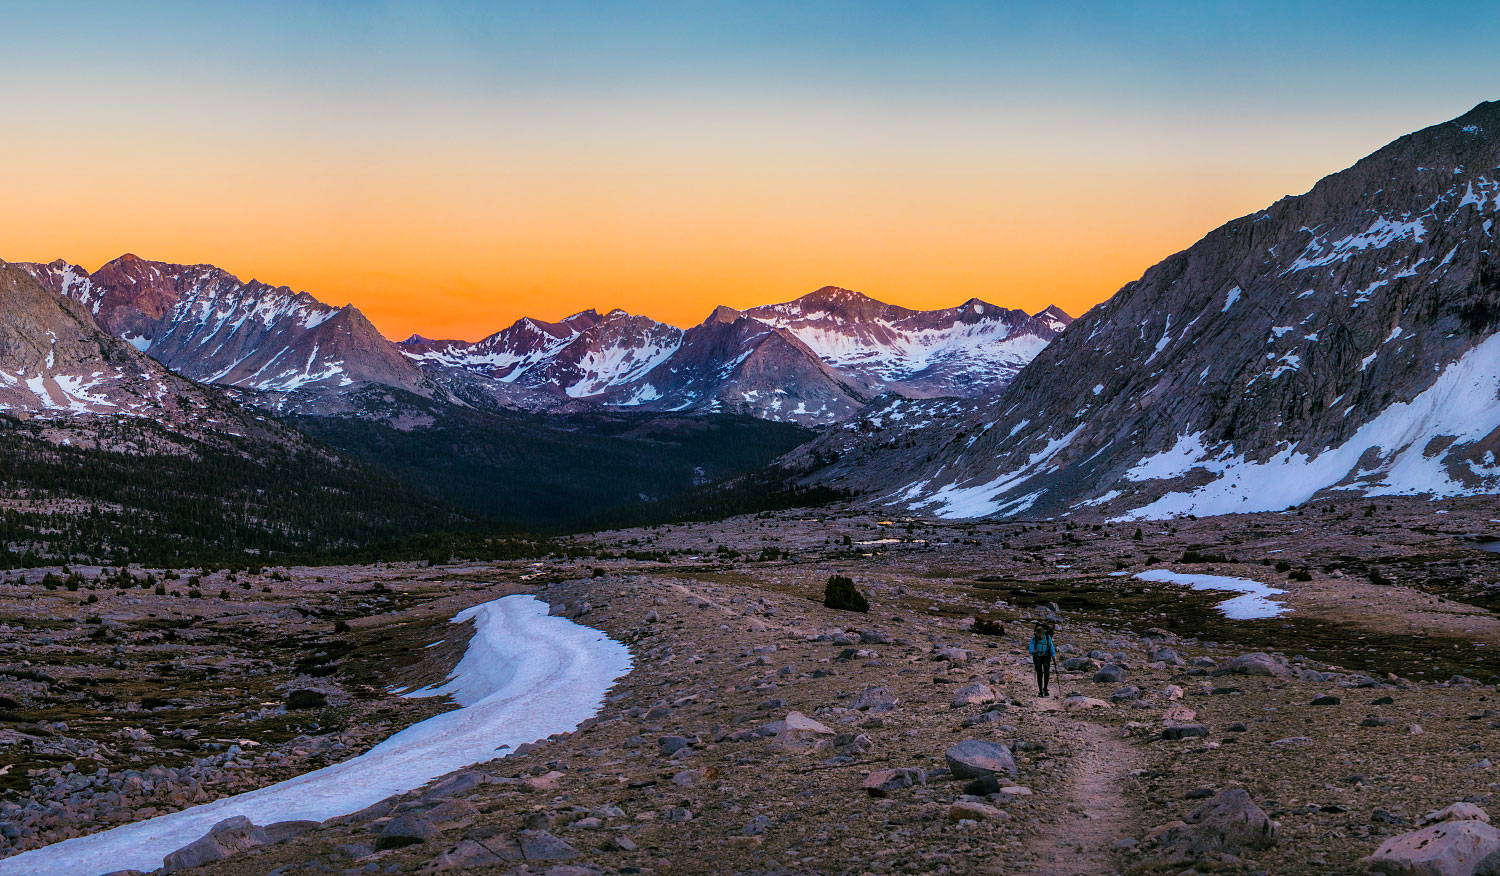 Sunset in Upper Basin, Mather Pass, mile 815.7.